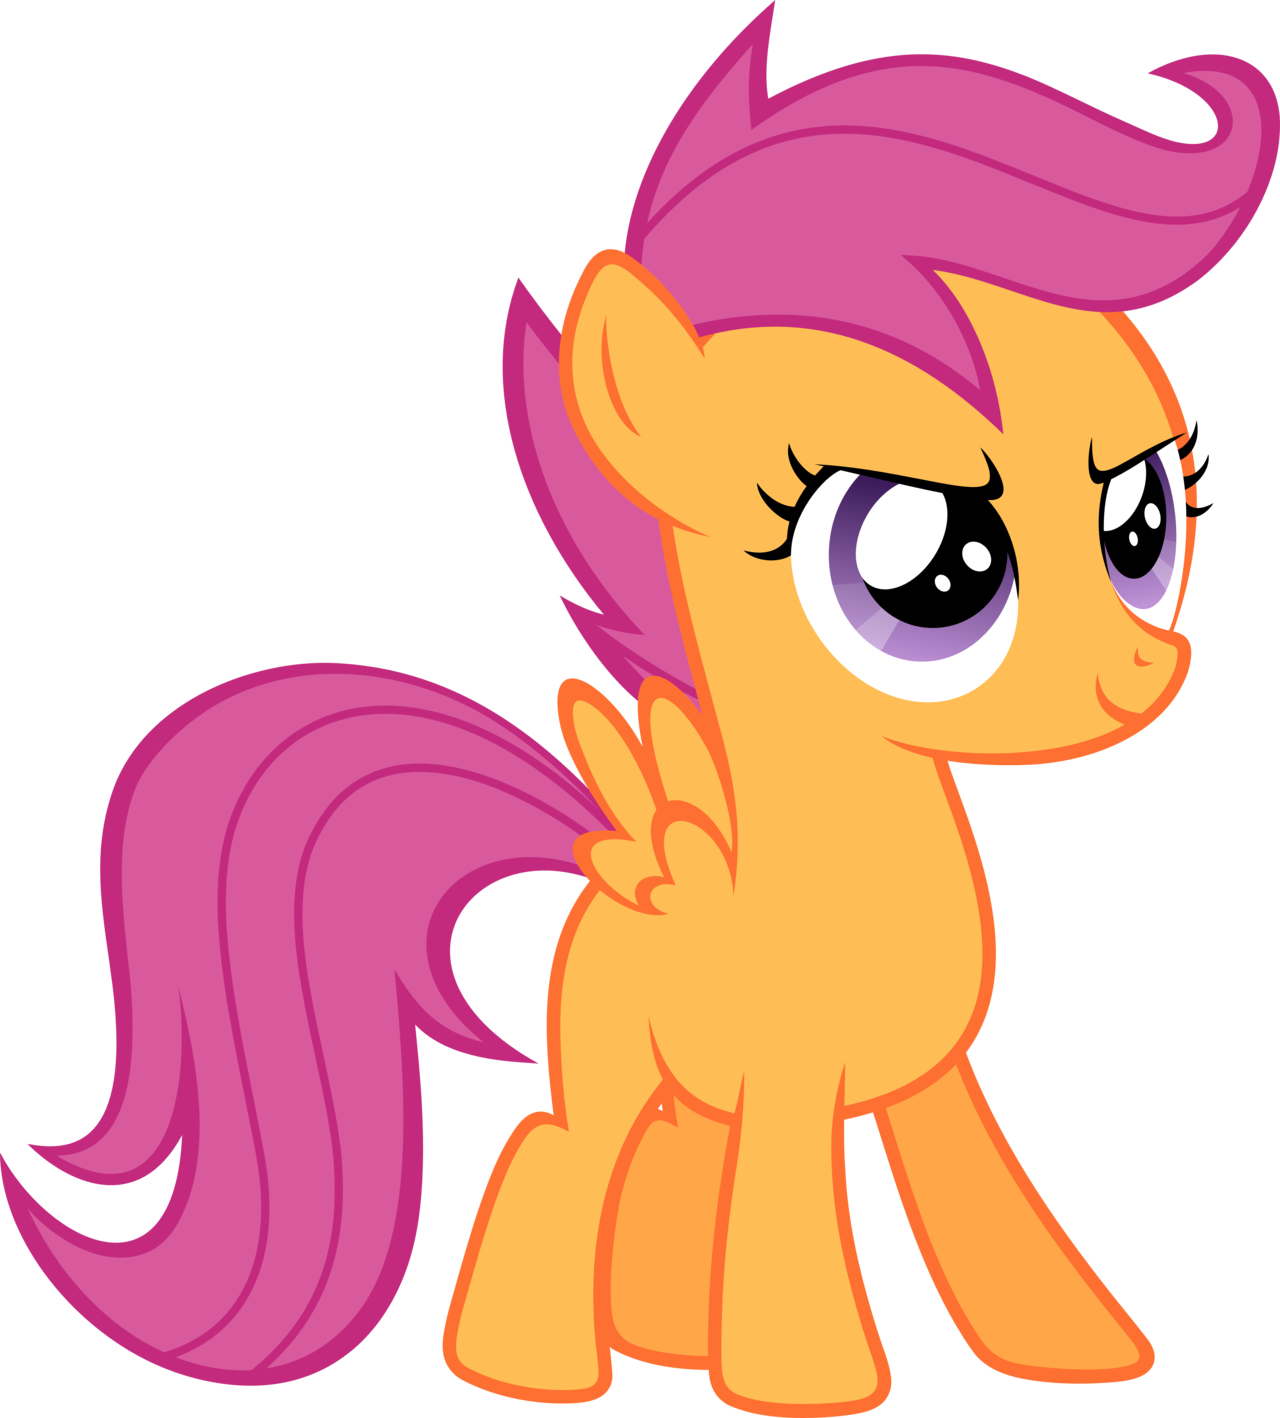 Scootaloo Ready To Action Desenhos Mlp Scootaloo pony apple bloom rarity cutie mark crusaders, base transparent background png clipart. scootaloo ready to action